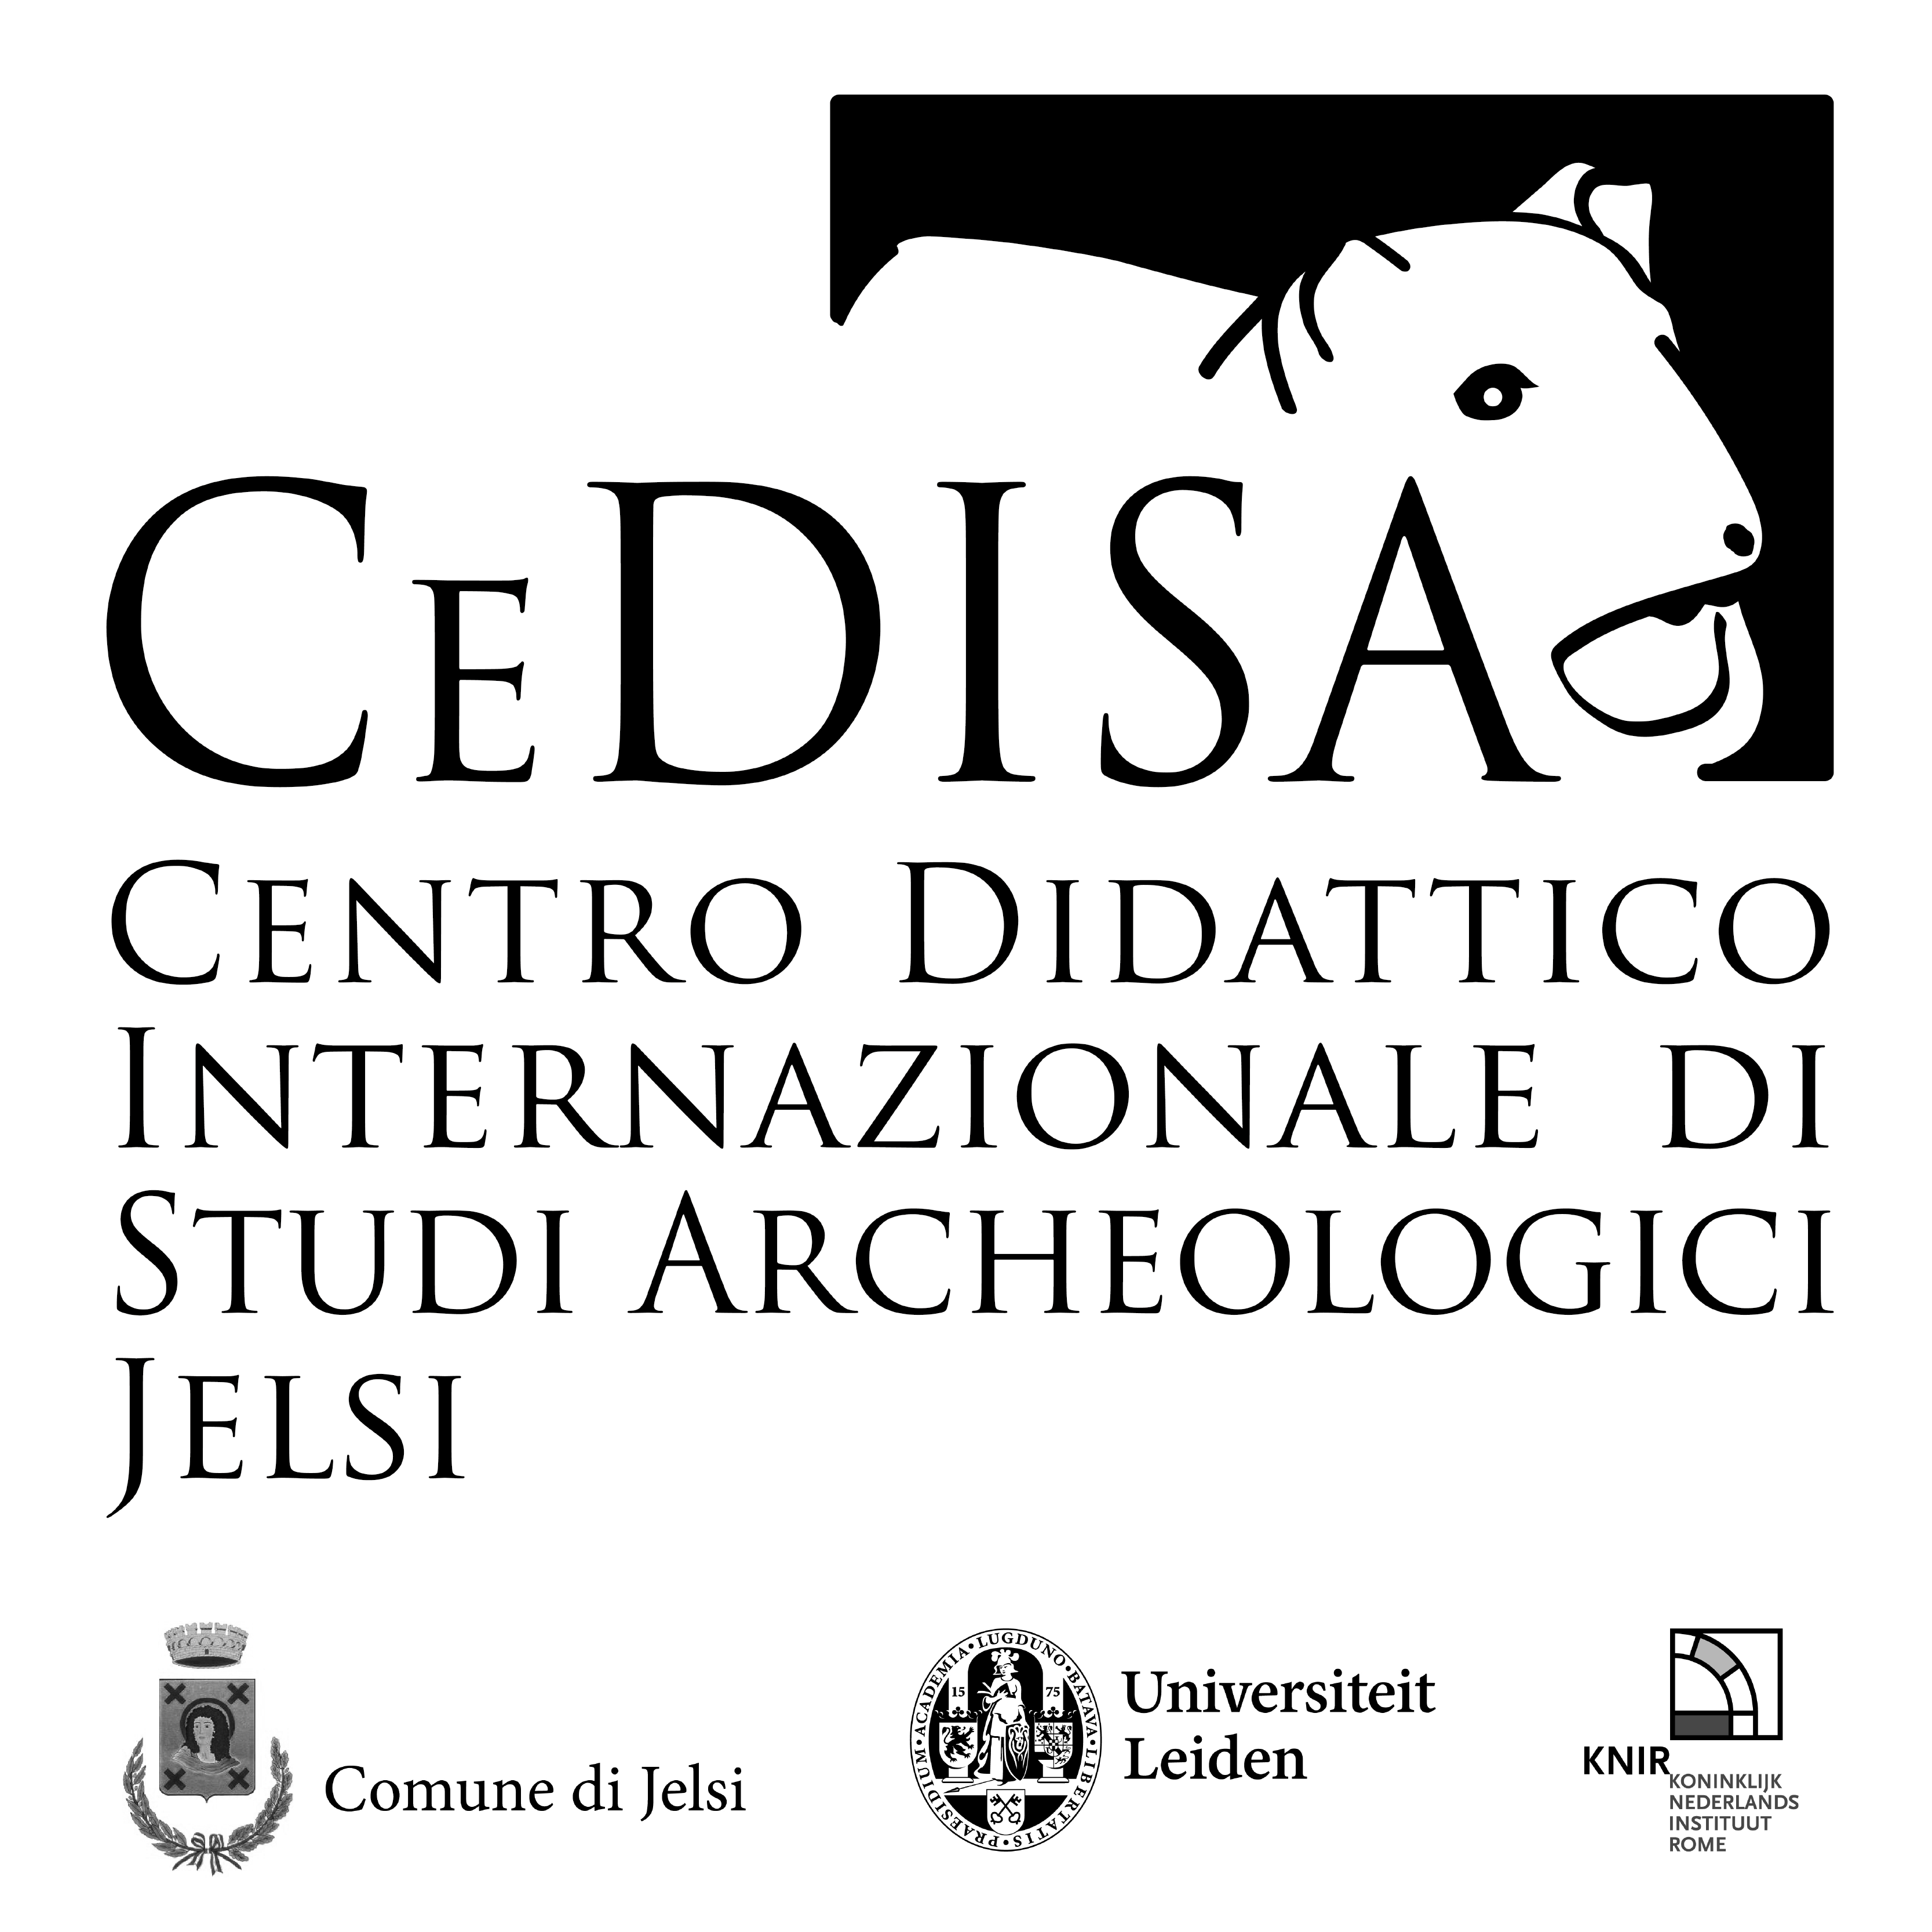 Centro Didattico Internazionale di Studi Archeologici Jelsi – International Archaeological Study Center Jelsi